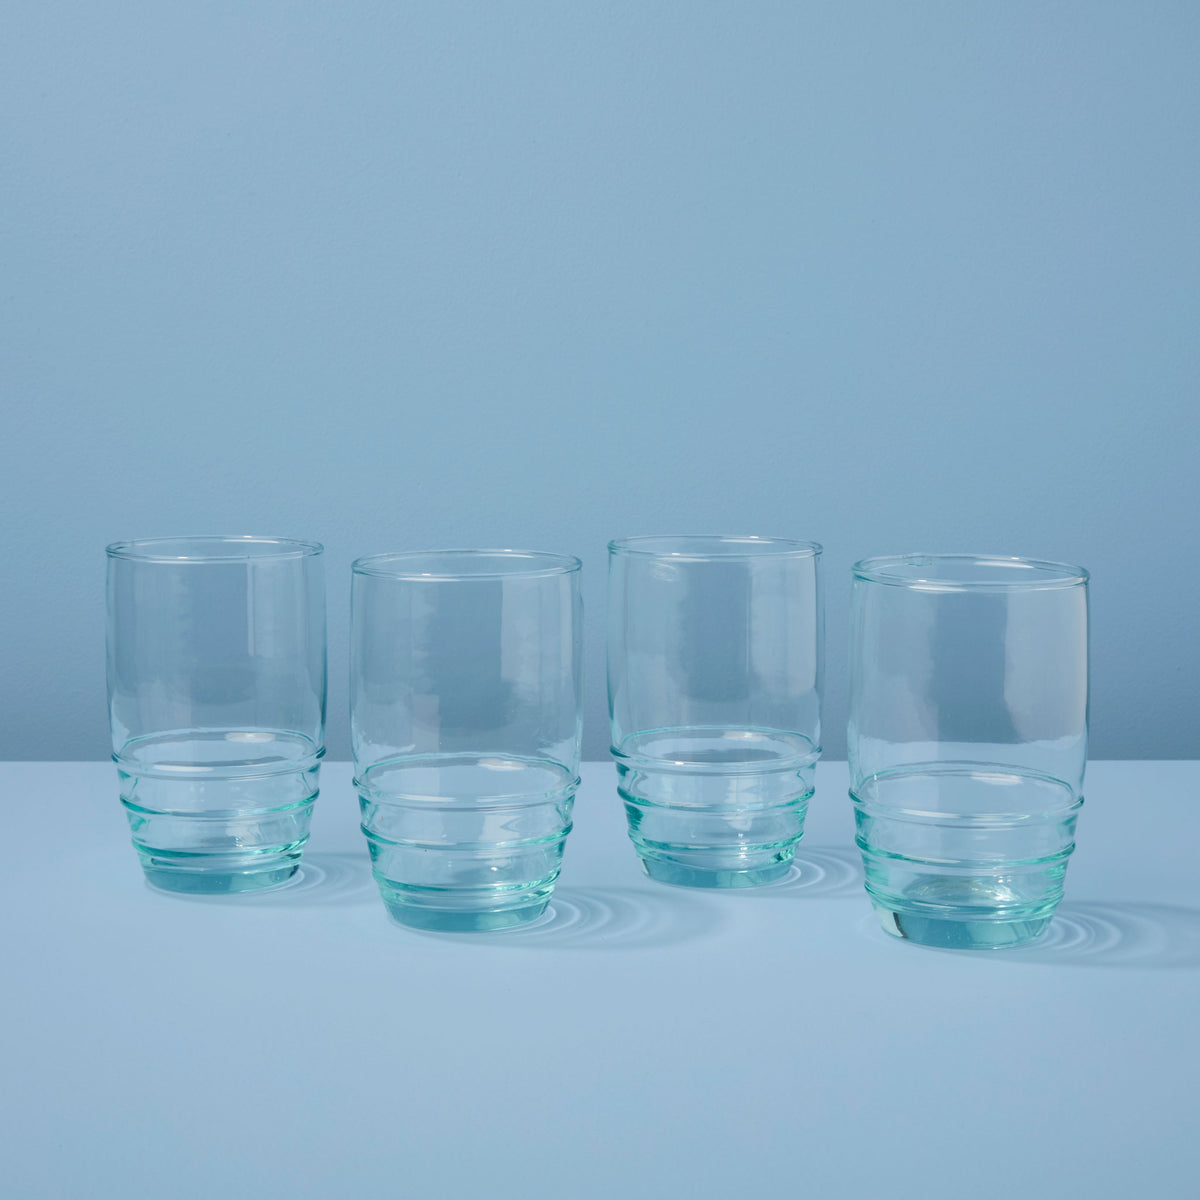 Premium Recycled Glass Rings Tumbler, Tall Set of 4